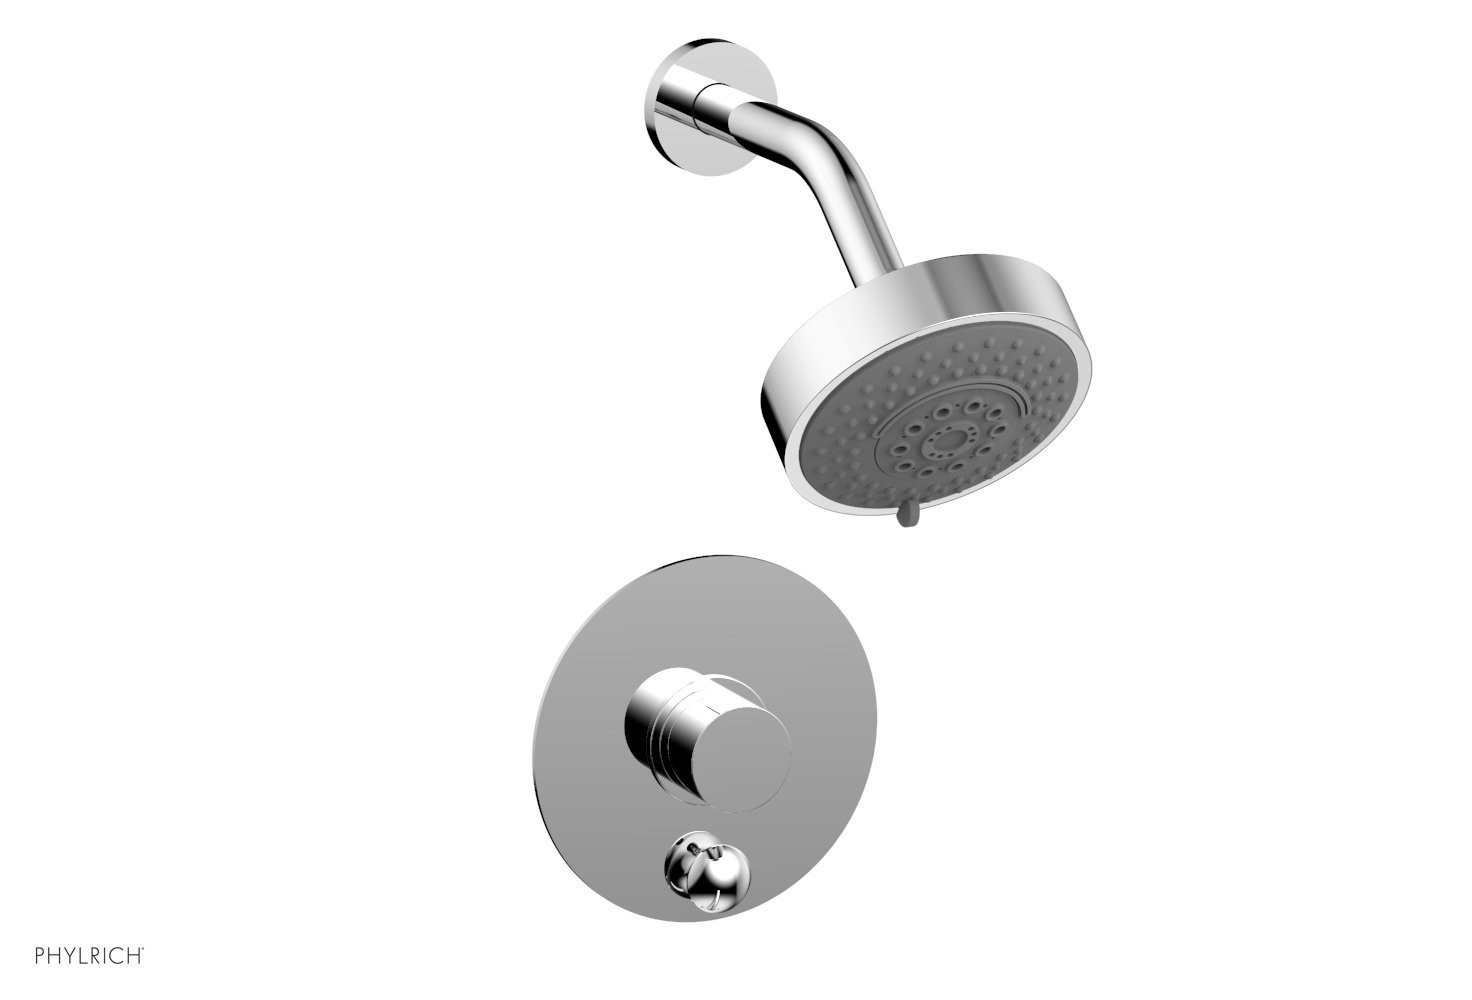 PHYLRICH 4-189 BASIC II WALL MOUNT PRESSURE BALANCE SHOWER AND DIVERTER SET WITH SMOOTH HANDLE